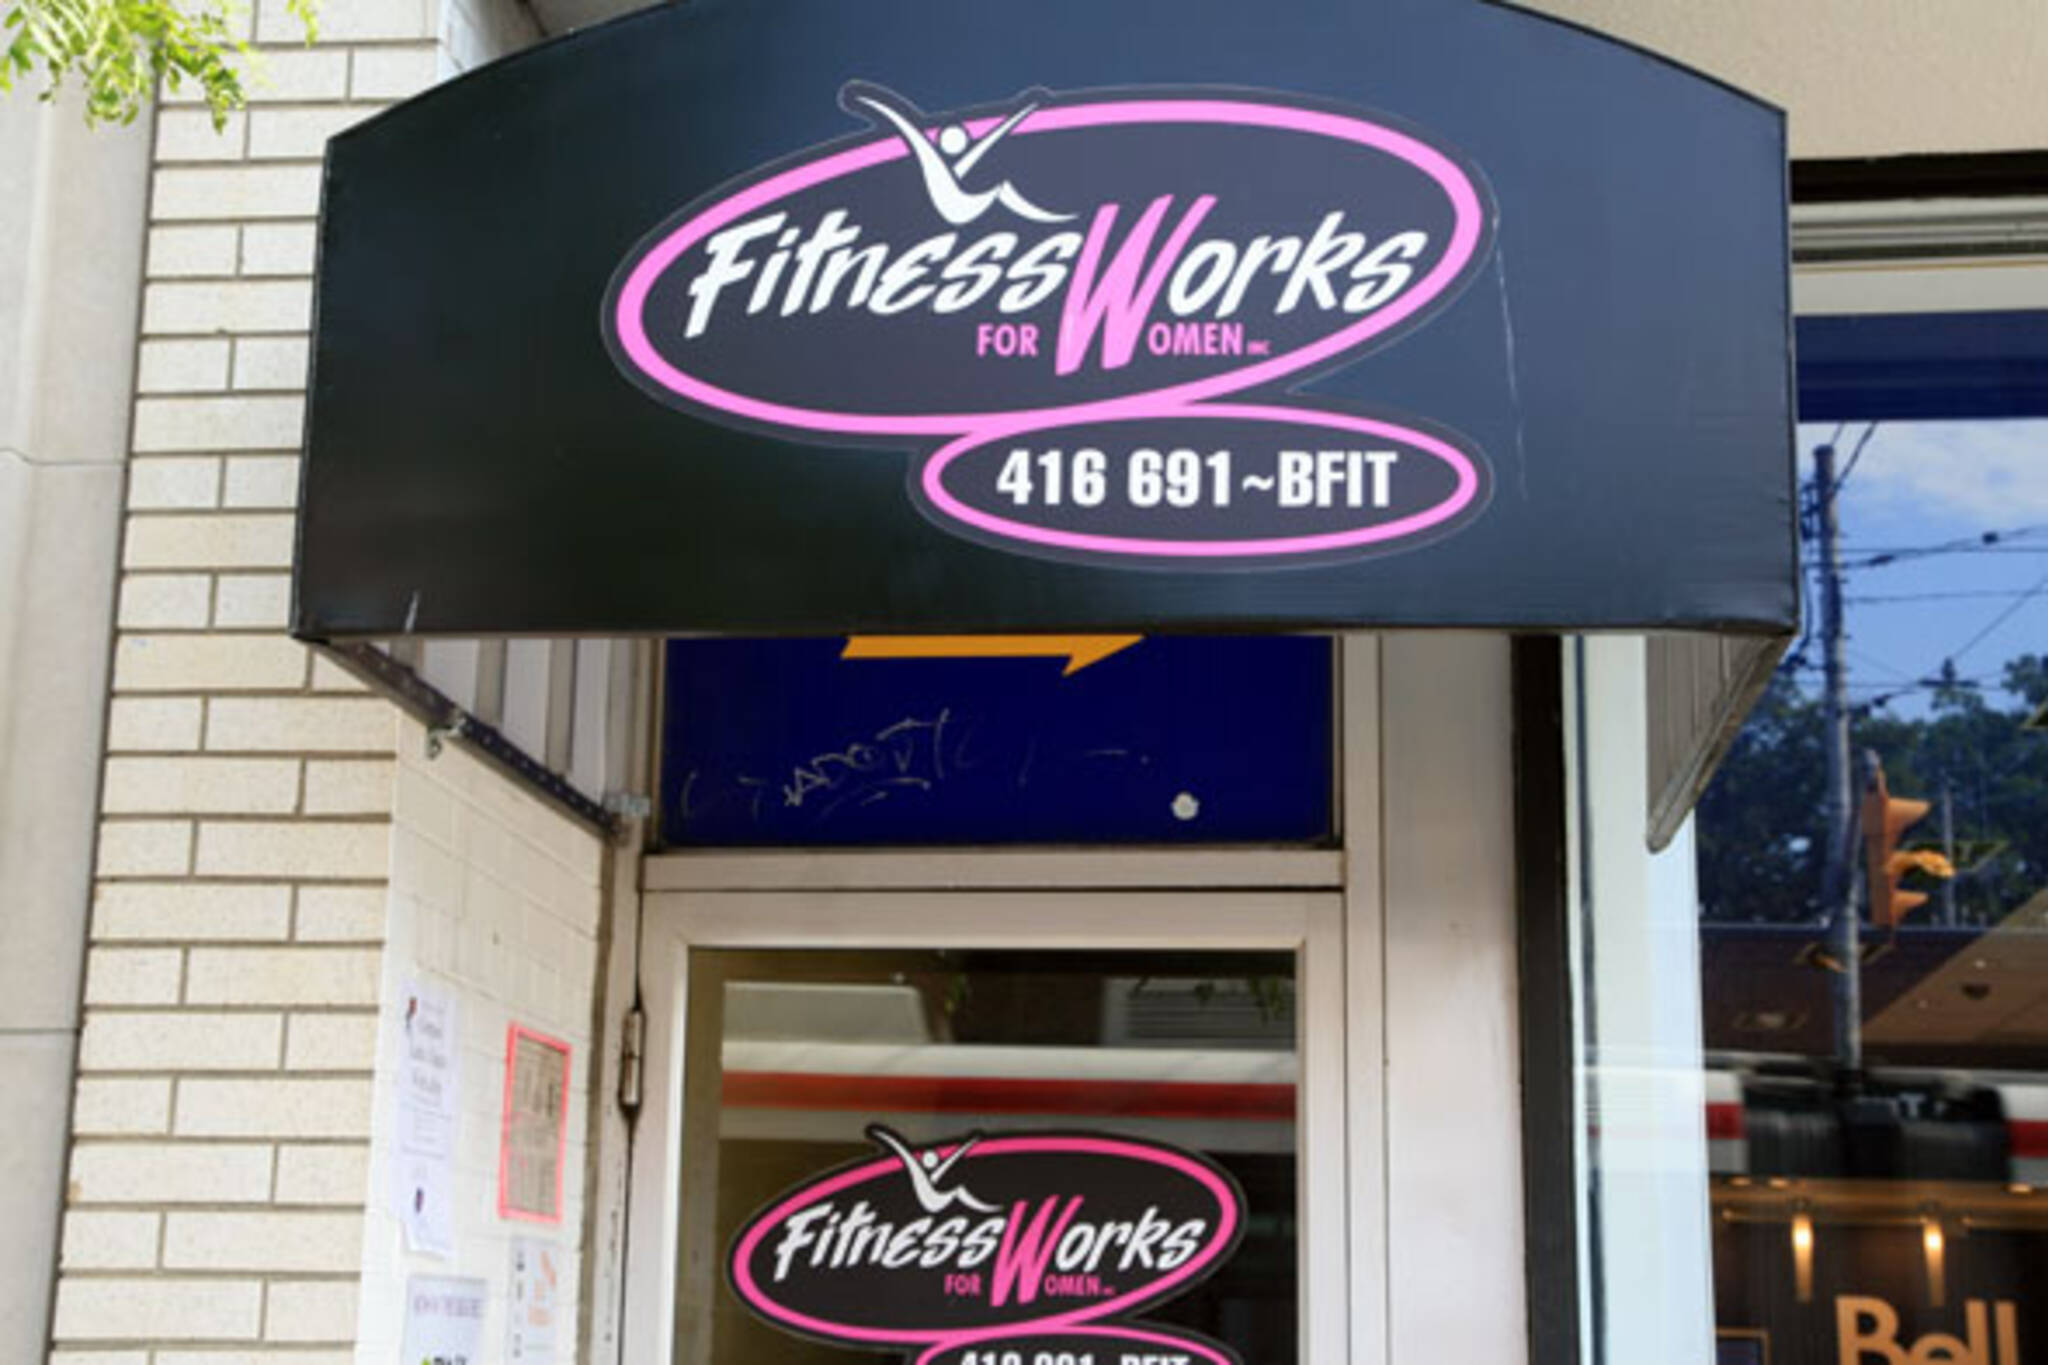 Fitness Works for Women